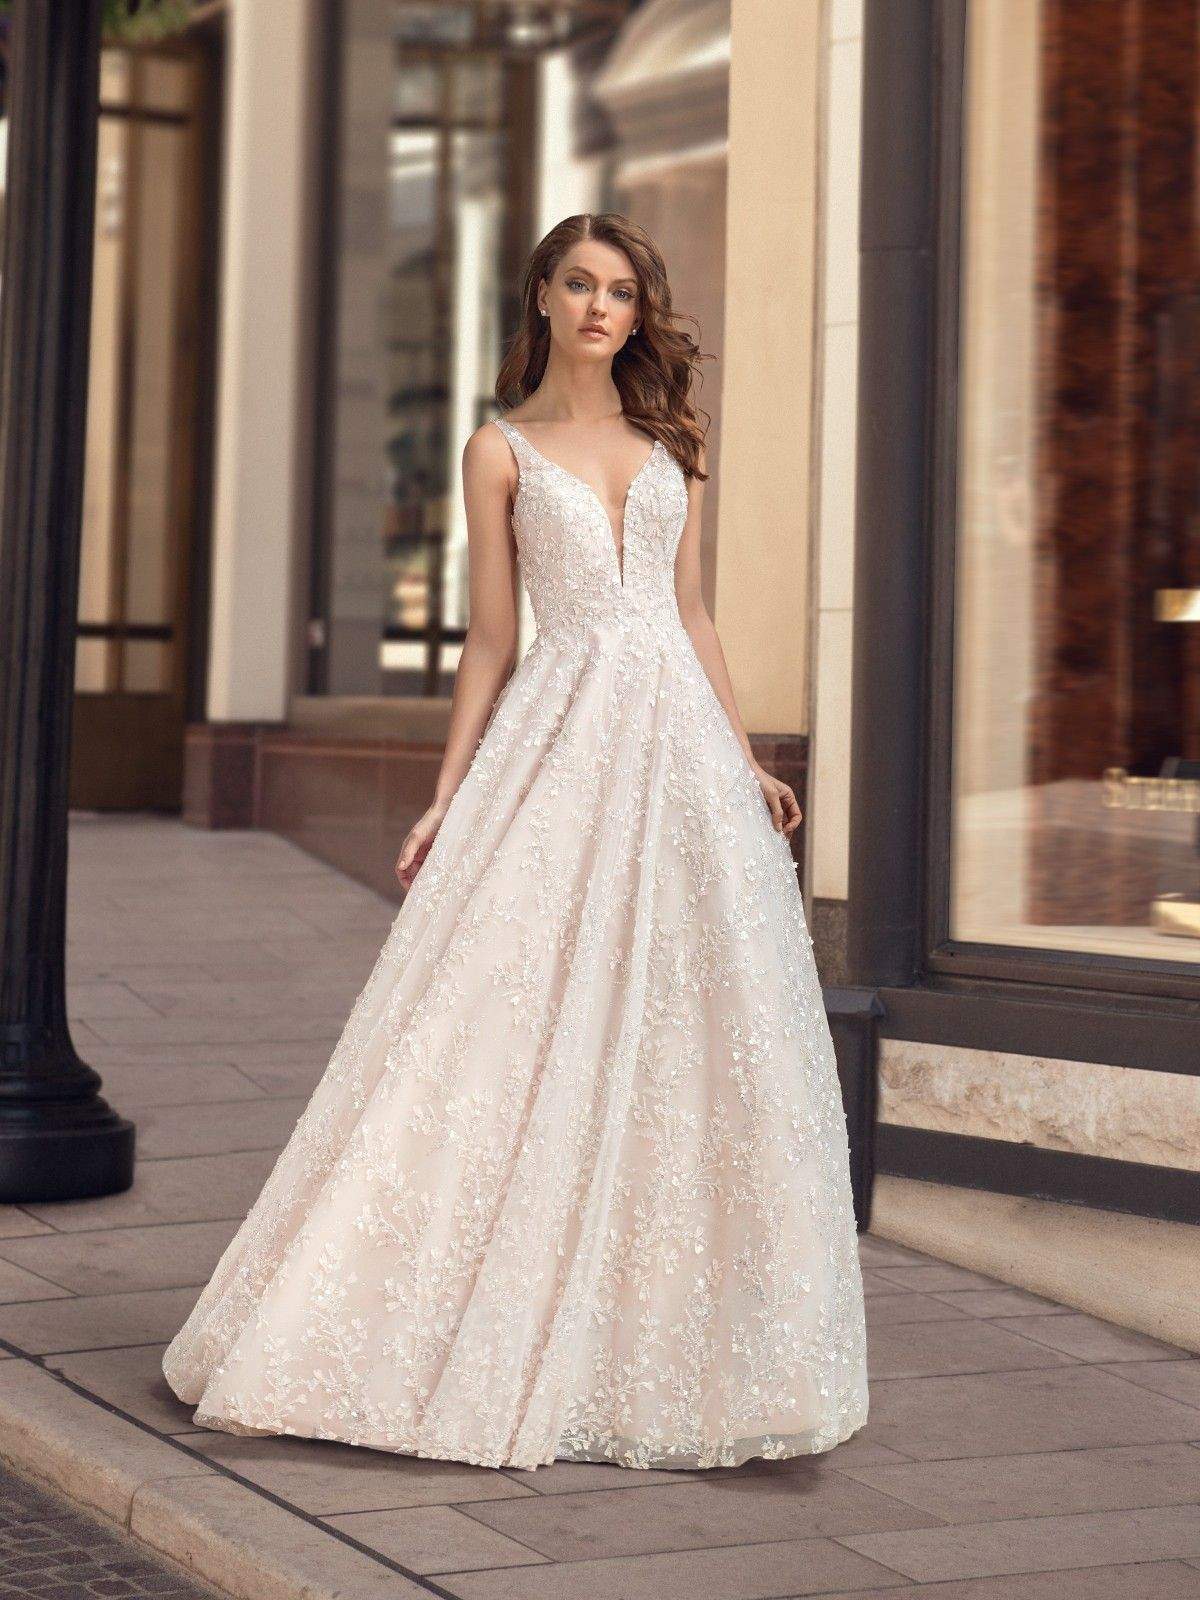 Sparkly Beaded A Line Beaded Ball Gown Style H1445 In 2020 Wedding Dresses Wedding Dress Necklines Bridal Ball Gown